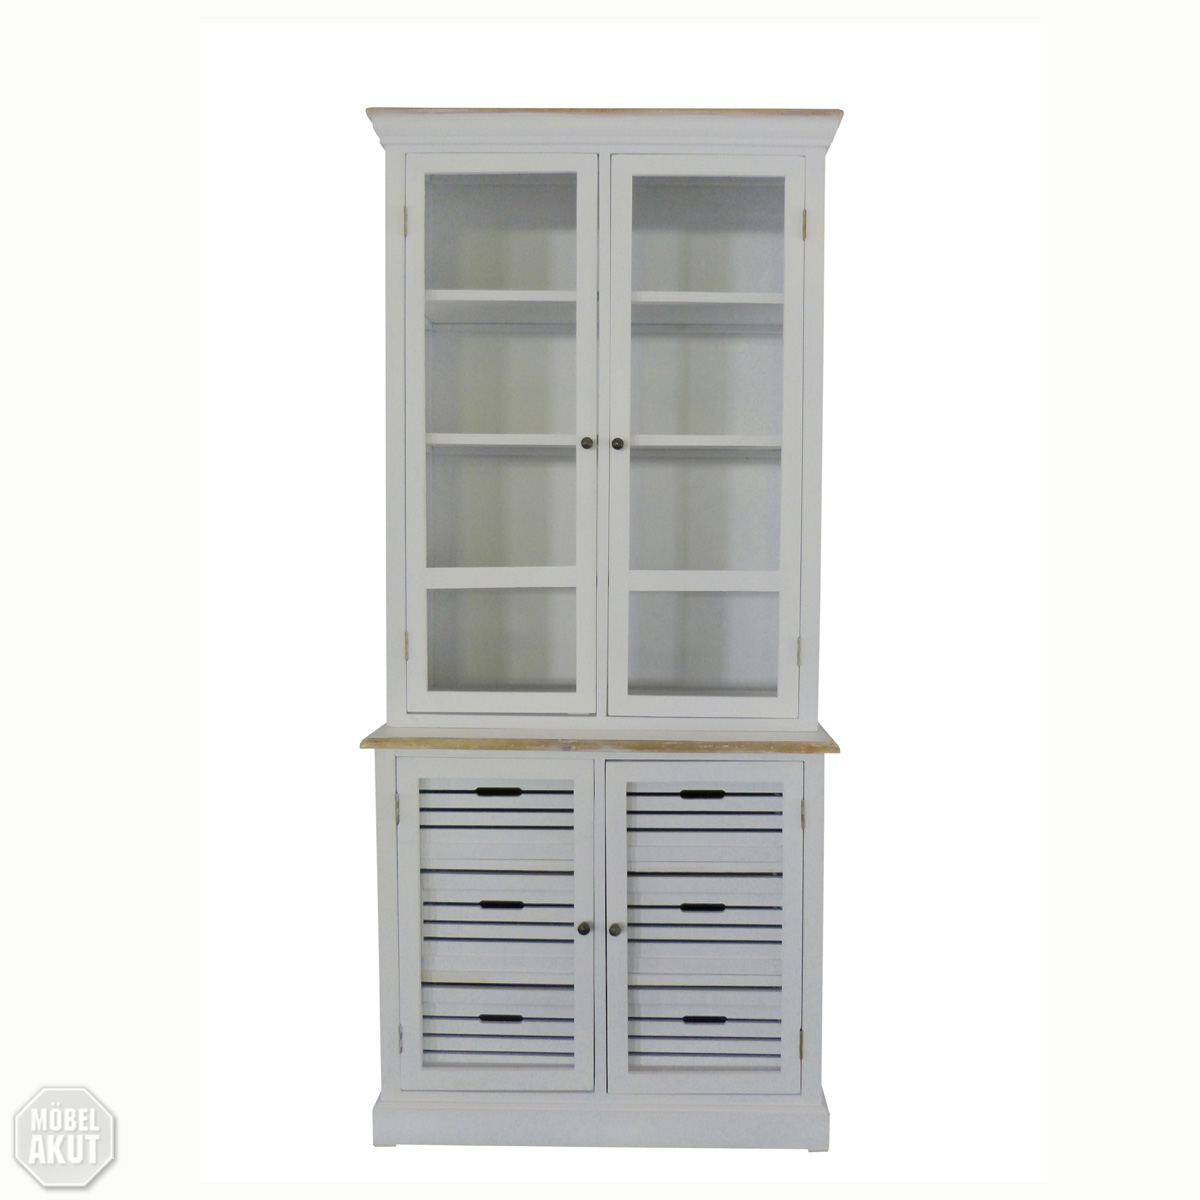 vitrine paris schrank in paulownia holz weiss vintage look. Black Bedroom Furniture Sets. Home Design Ideas